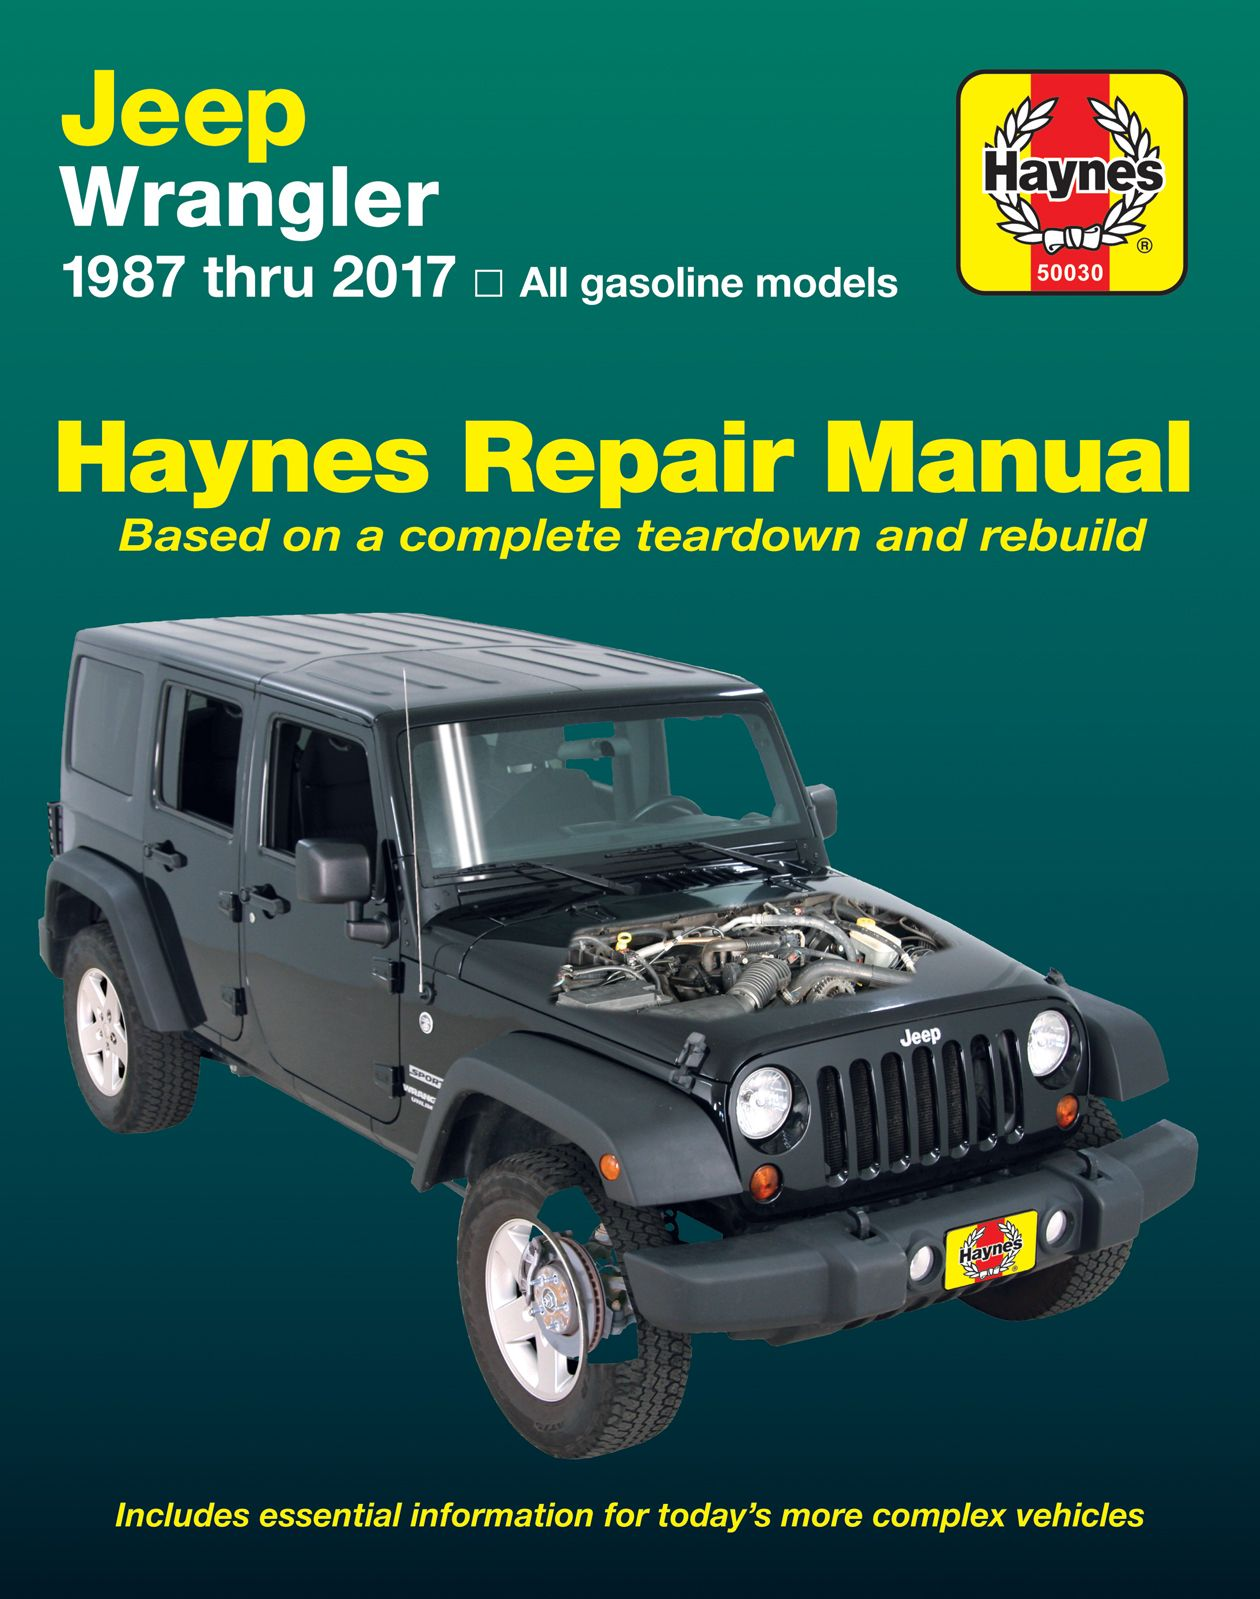 Jeep Wrangler 1987 2017 Repair Manuals Jeep Wrangler Jeep